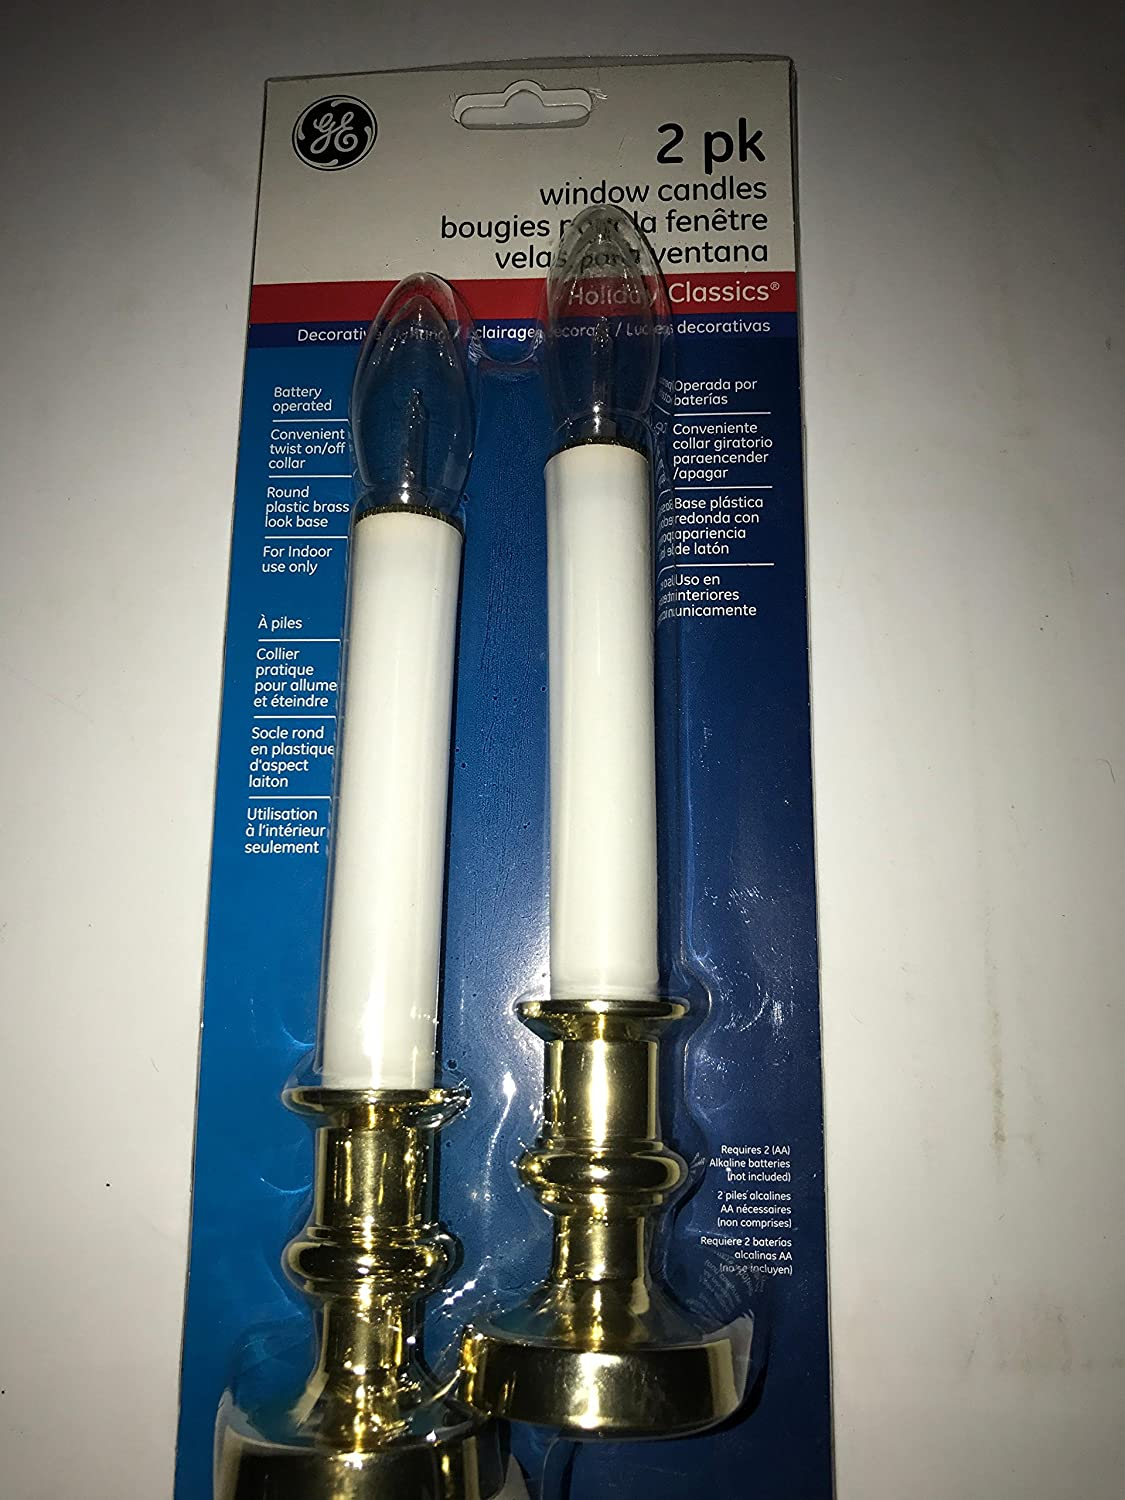 2 pk GE Holiday Classics Window Candles